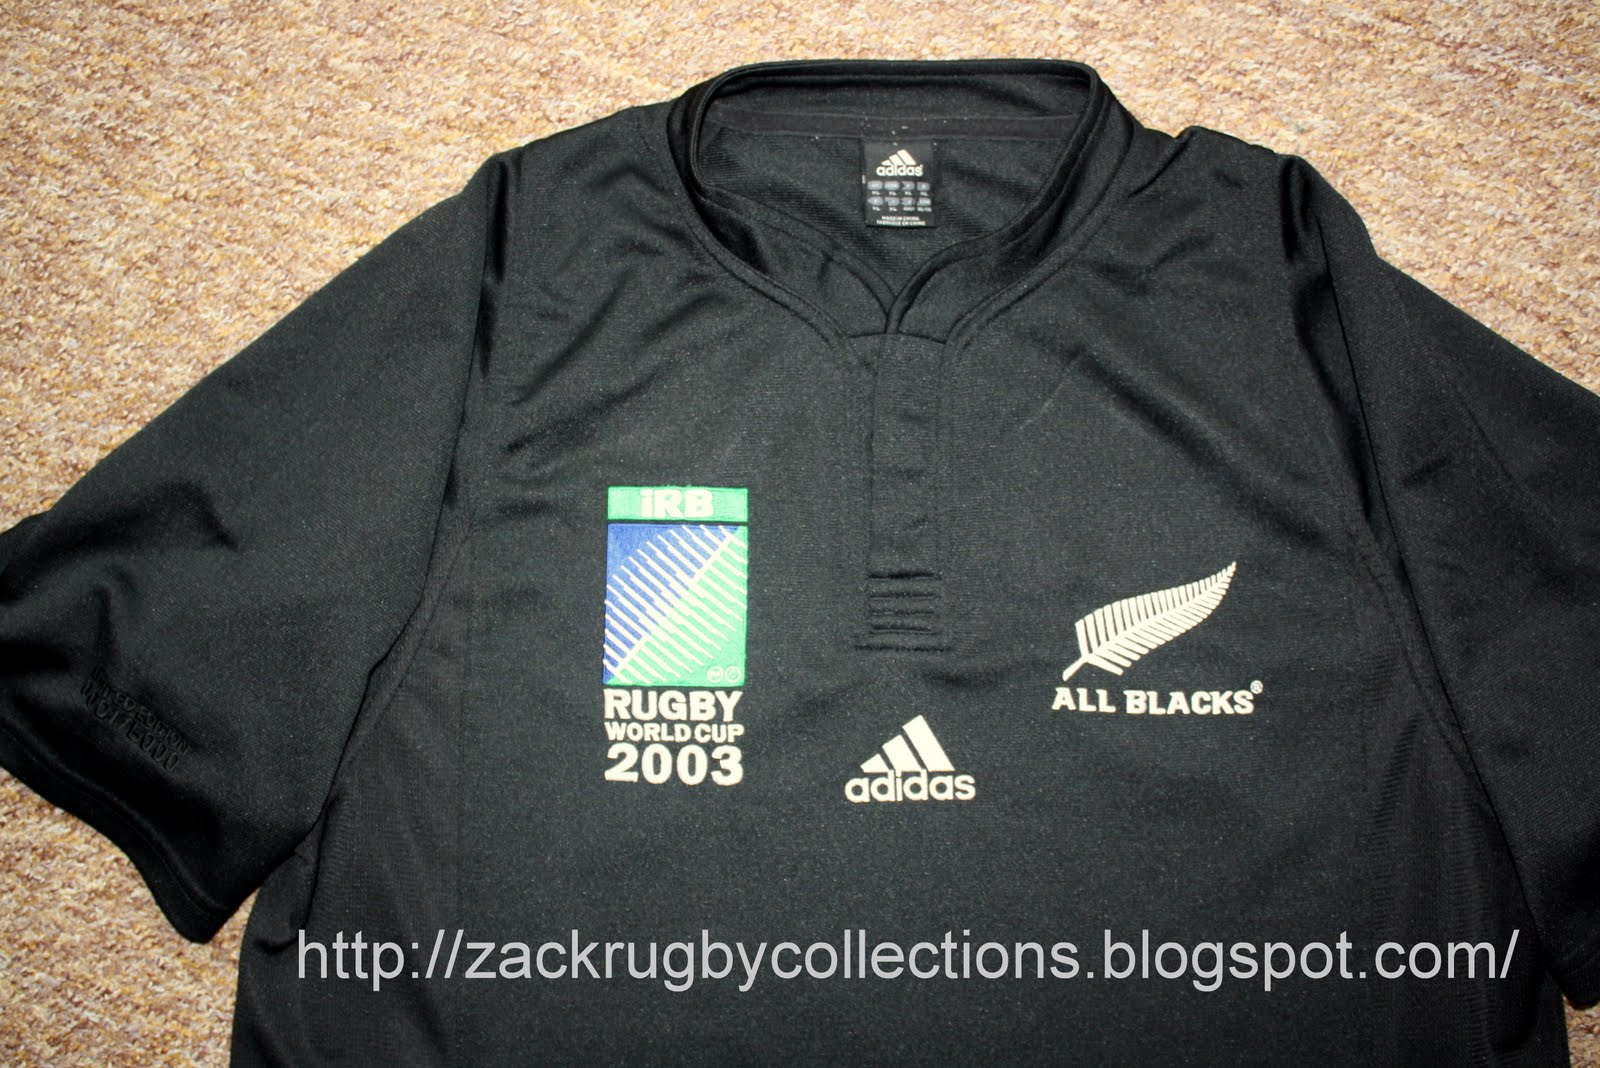 acca9f798c2 New Zealand All Blacks SS RWC 2003 LTD Edition Rugby Jersey made by Adidas.  Official All Blacks LTD Edition rugby jersey released for Rugby World Cup  2003 ...